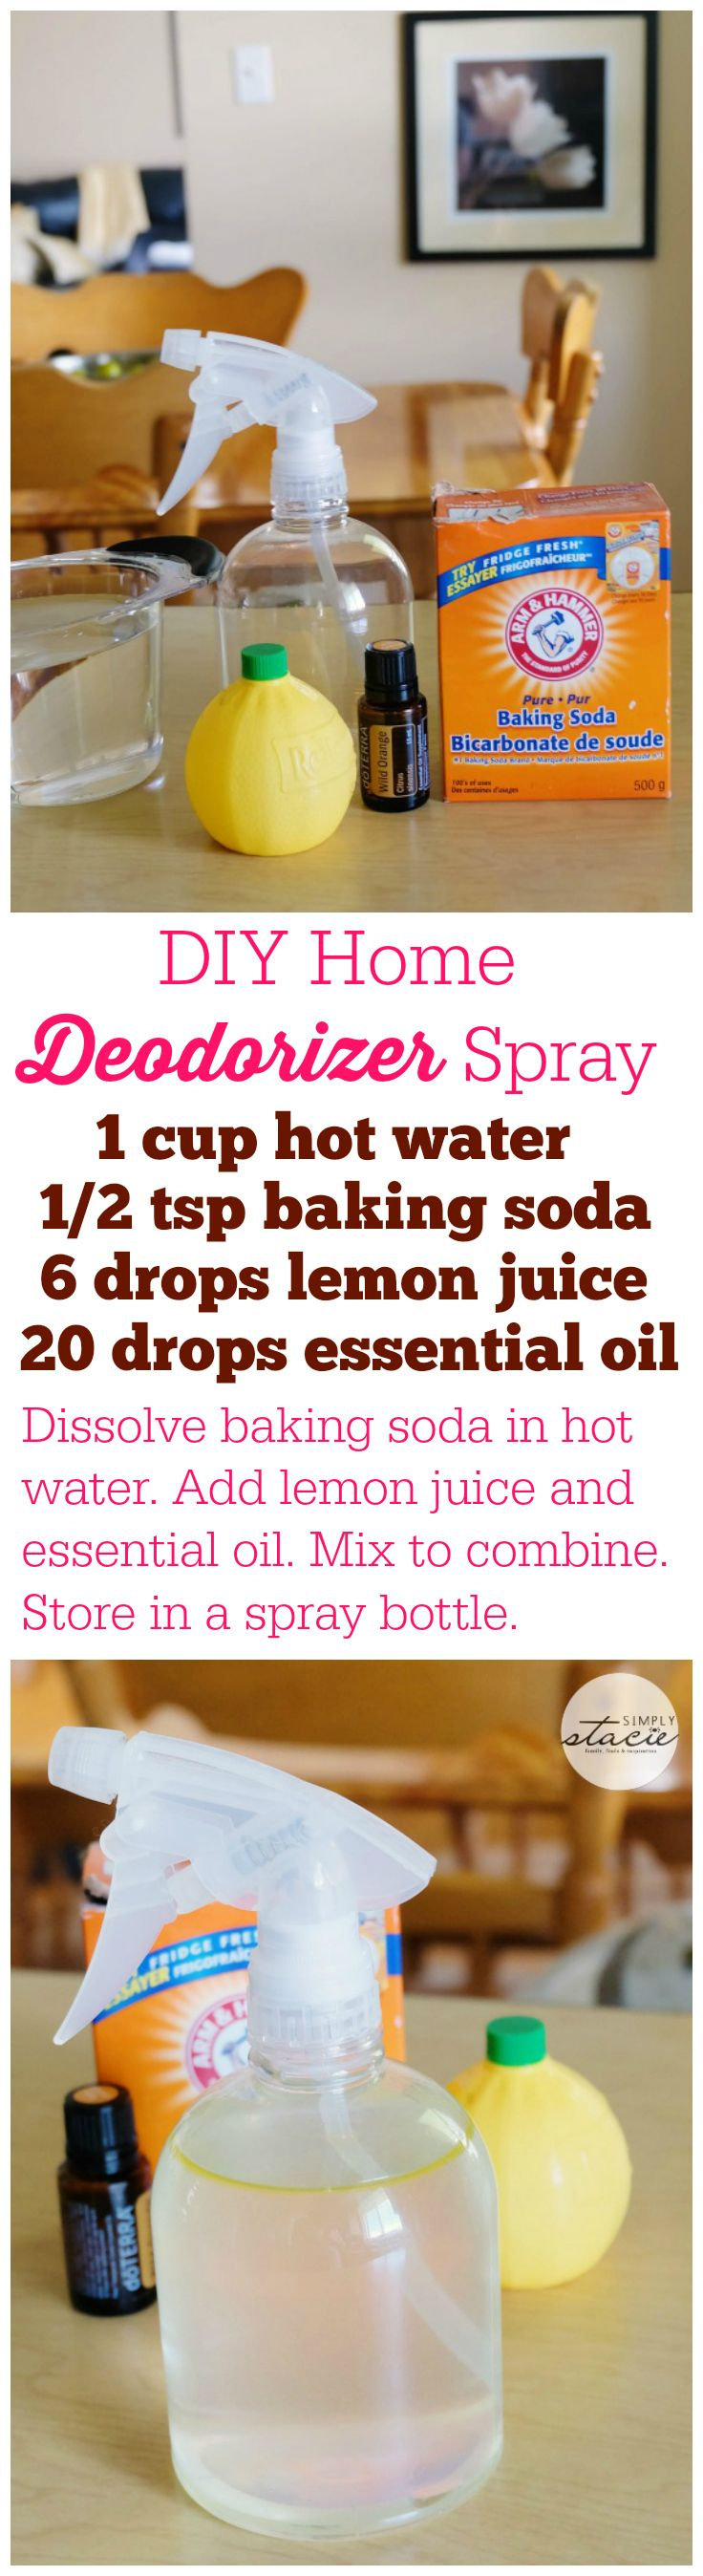 Diy Home Deodorizer Spray Diy Cleaning Products Cleaning Recipes Cleaning Hacks